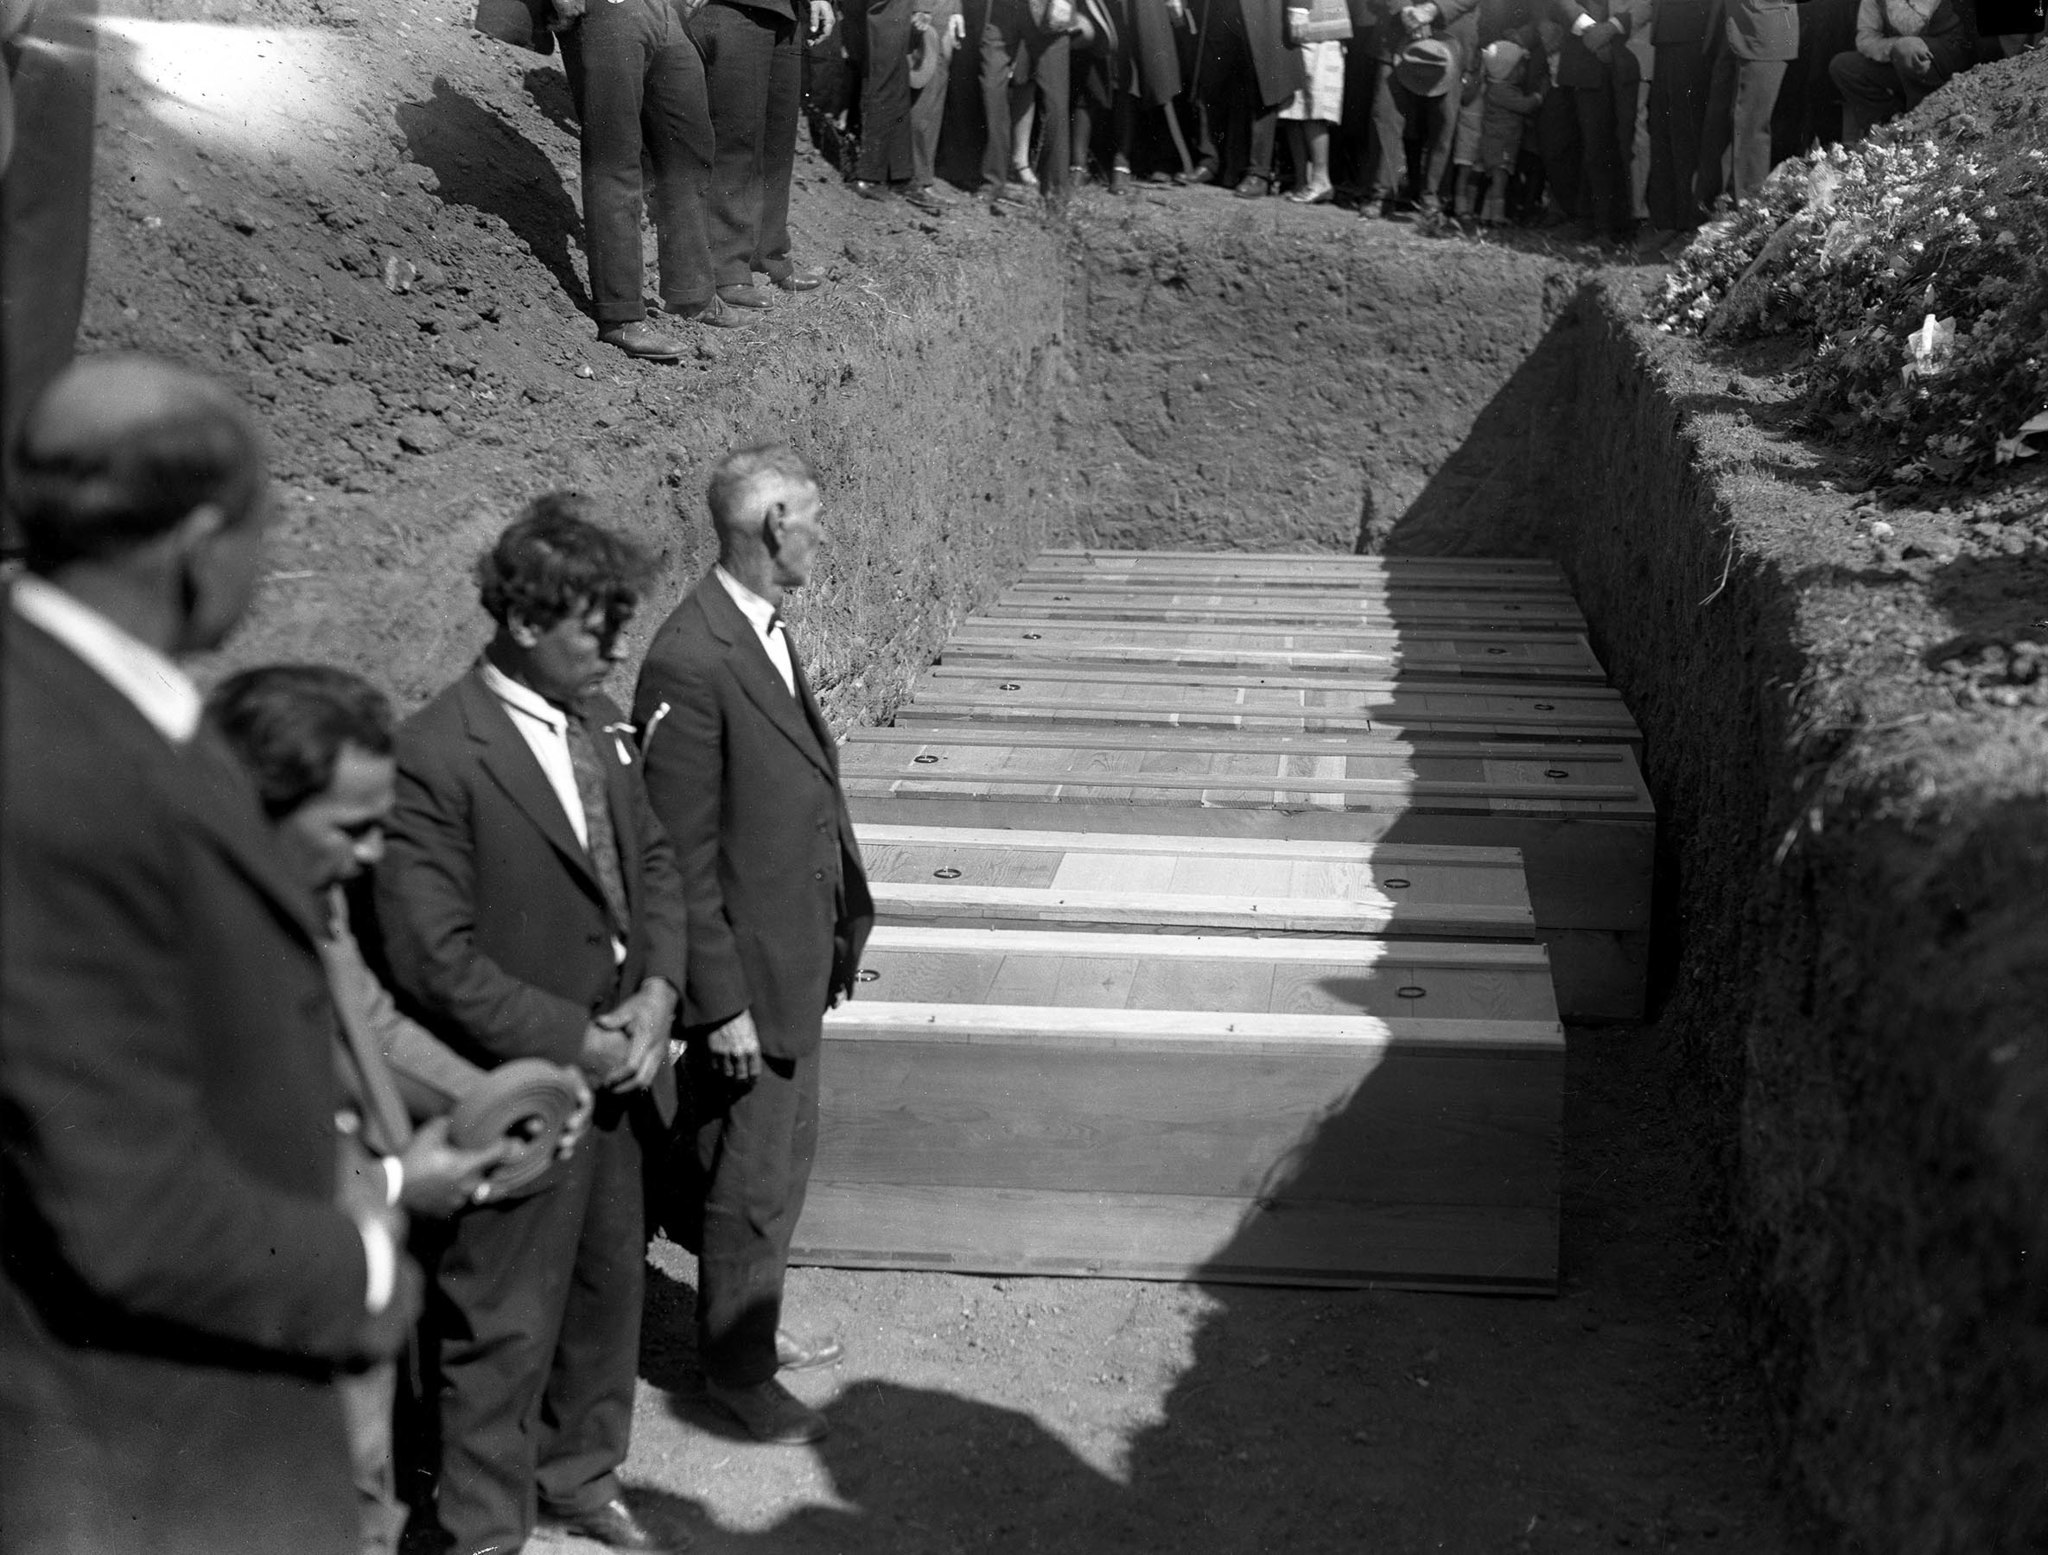 Seven coffins containing victims of March 13, 1928 St. Francis Dam collapse prepared for burial in S